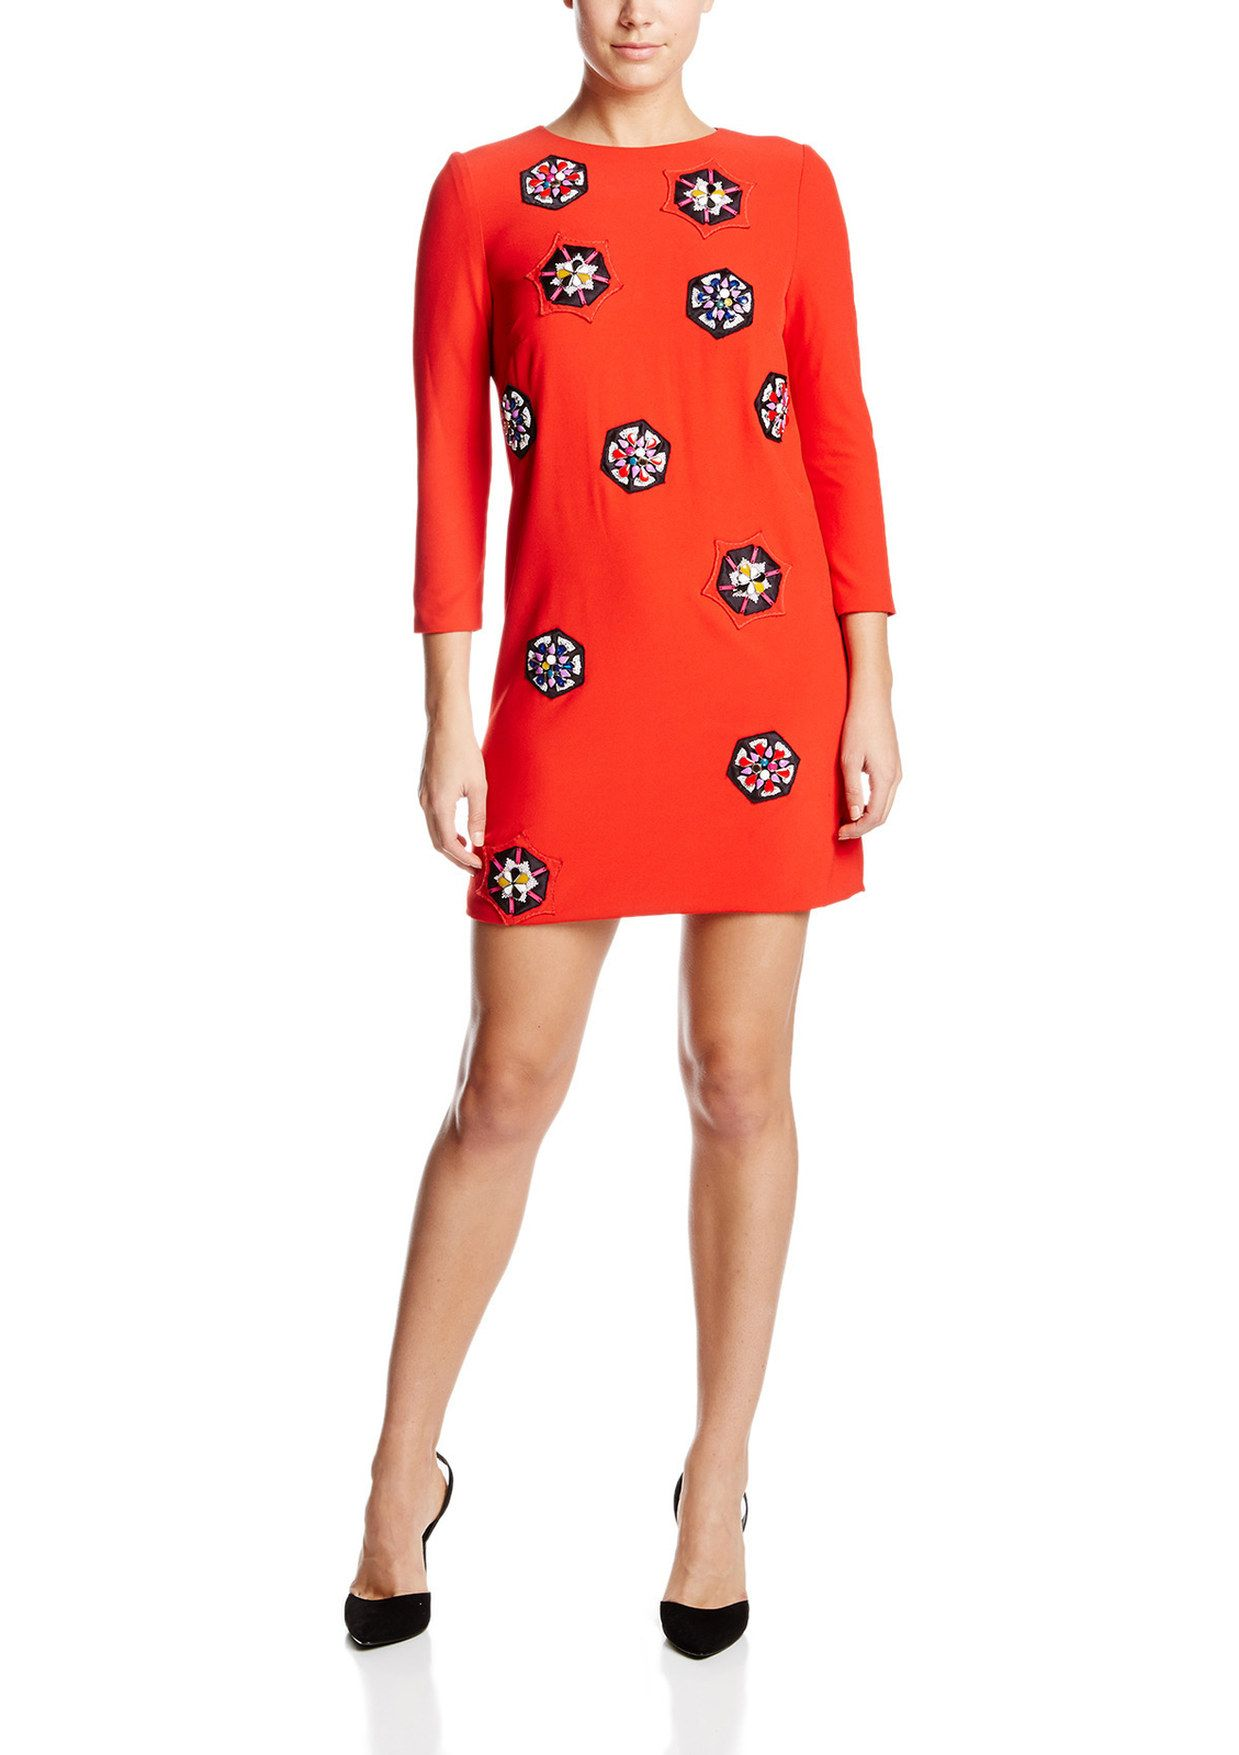 CYNTHIA ROWLEY Georgette Shift Dress with Beaded Appliques | ideel